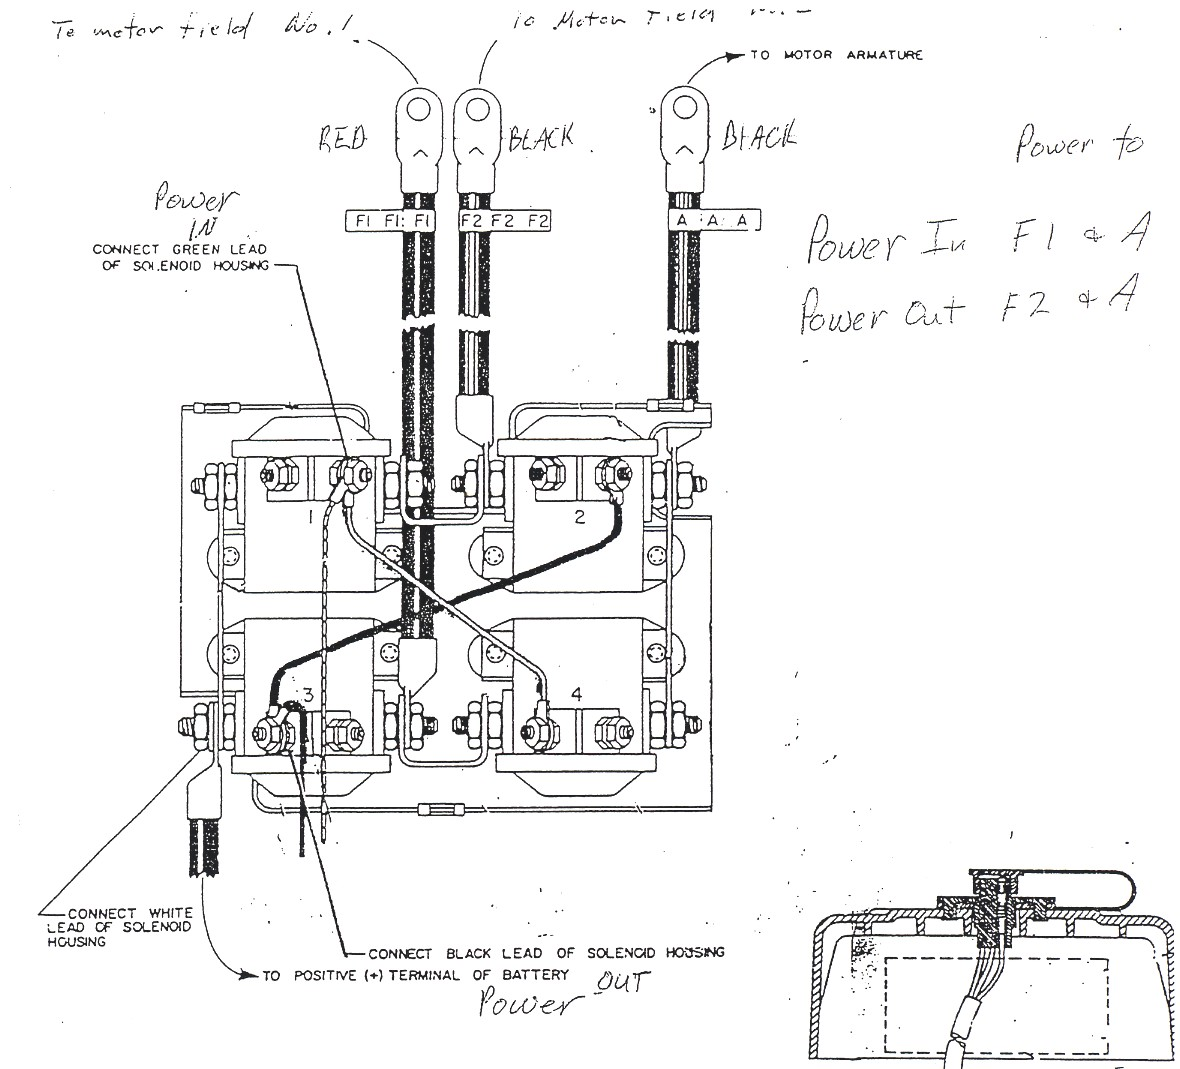 wiring diagram for warn winch on atv hunter ceiling fans remote control get free image